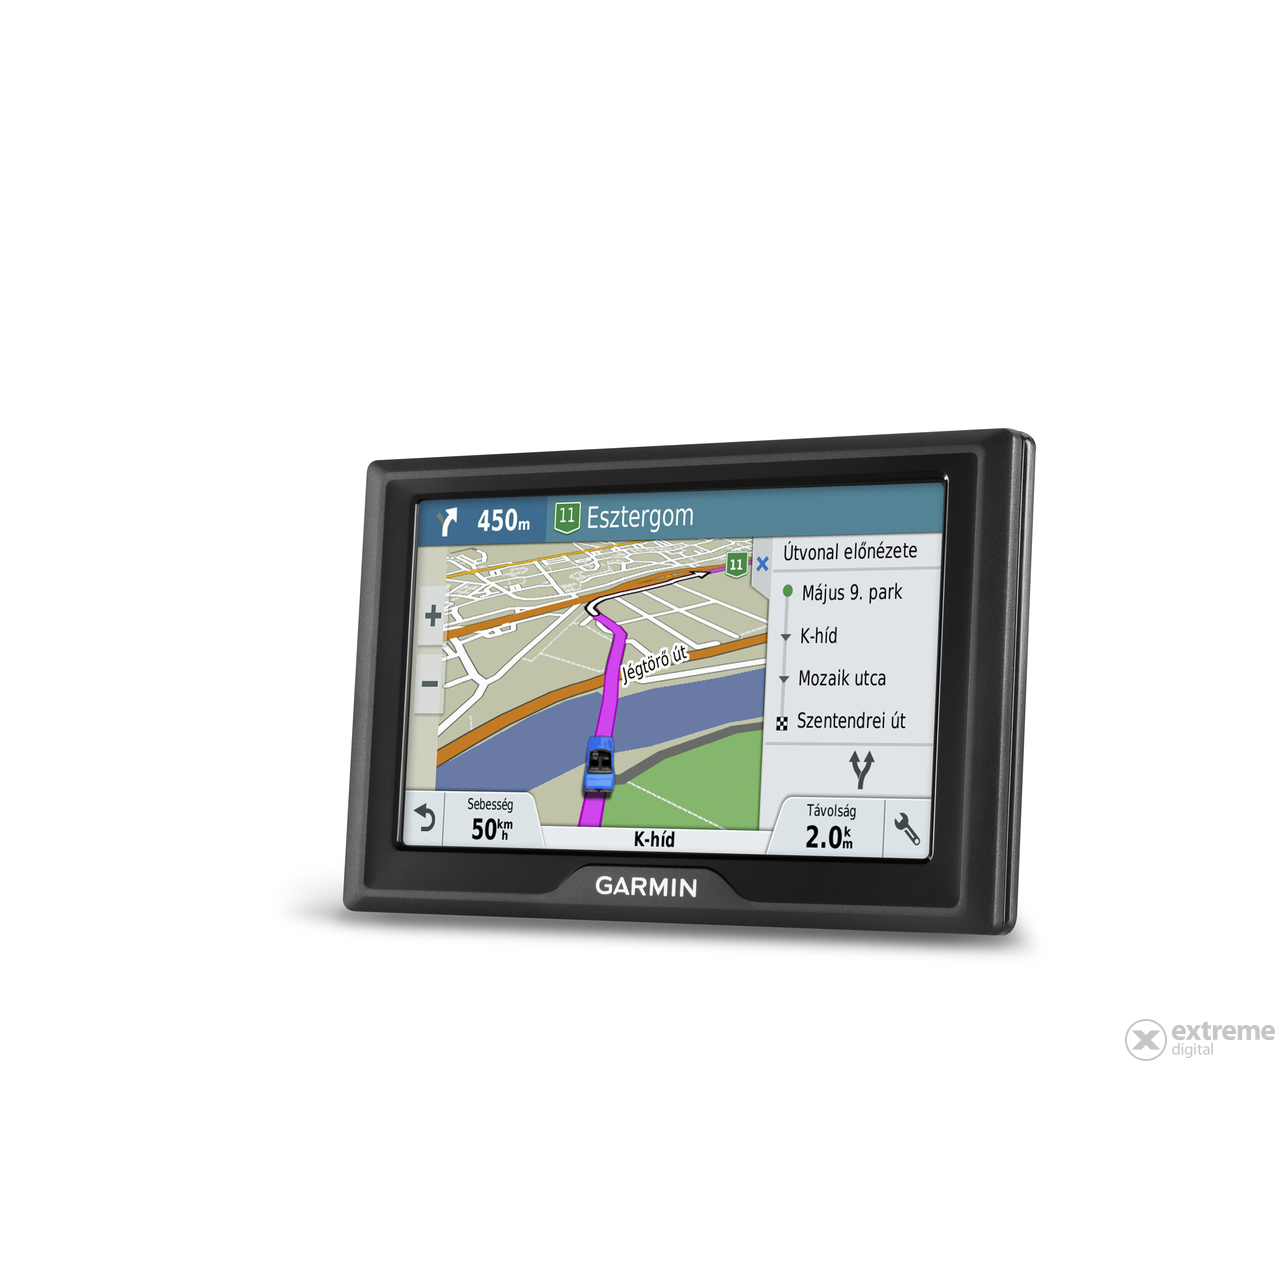 garmin drive 50 lm lifetime maps 5 extreme digital. Black Bedroom Furniture Sets. Home Design Ideas